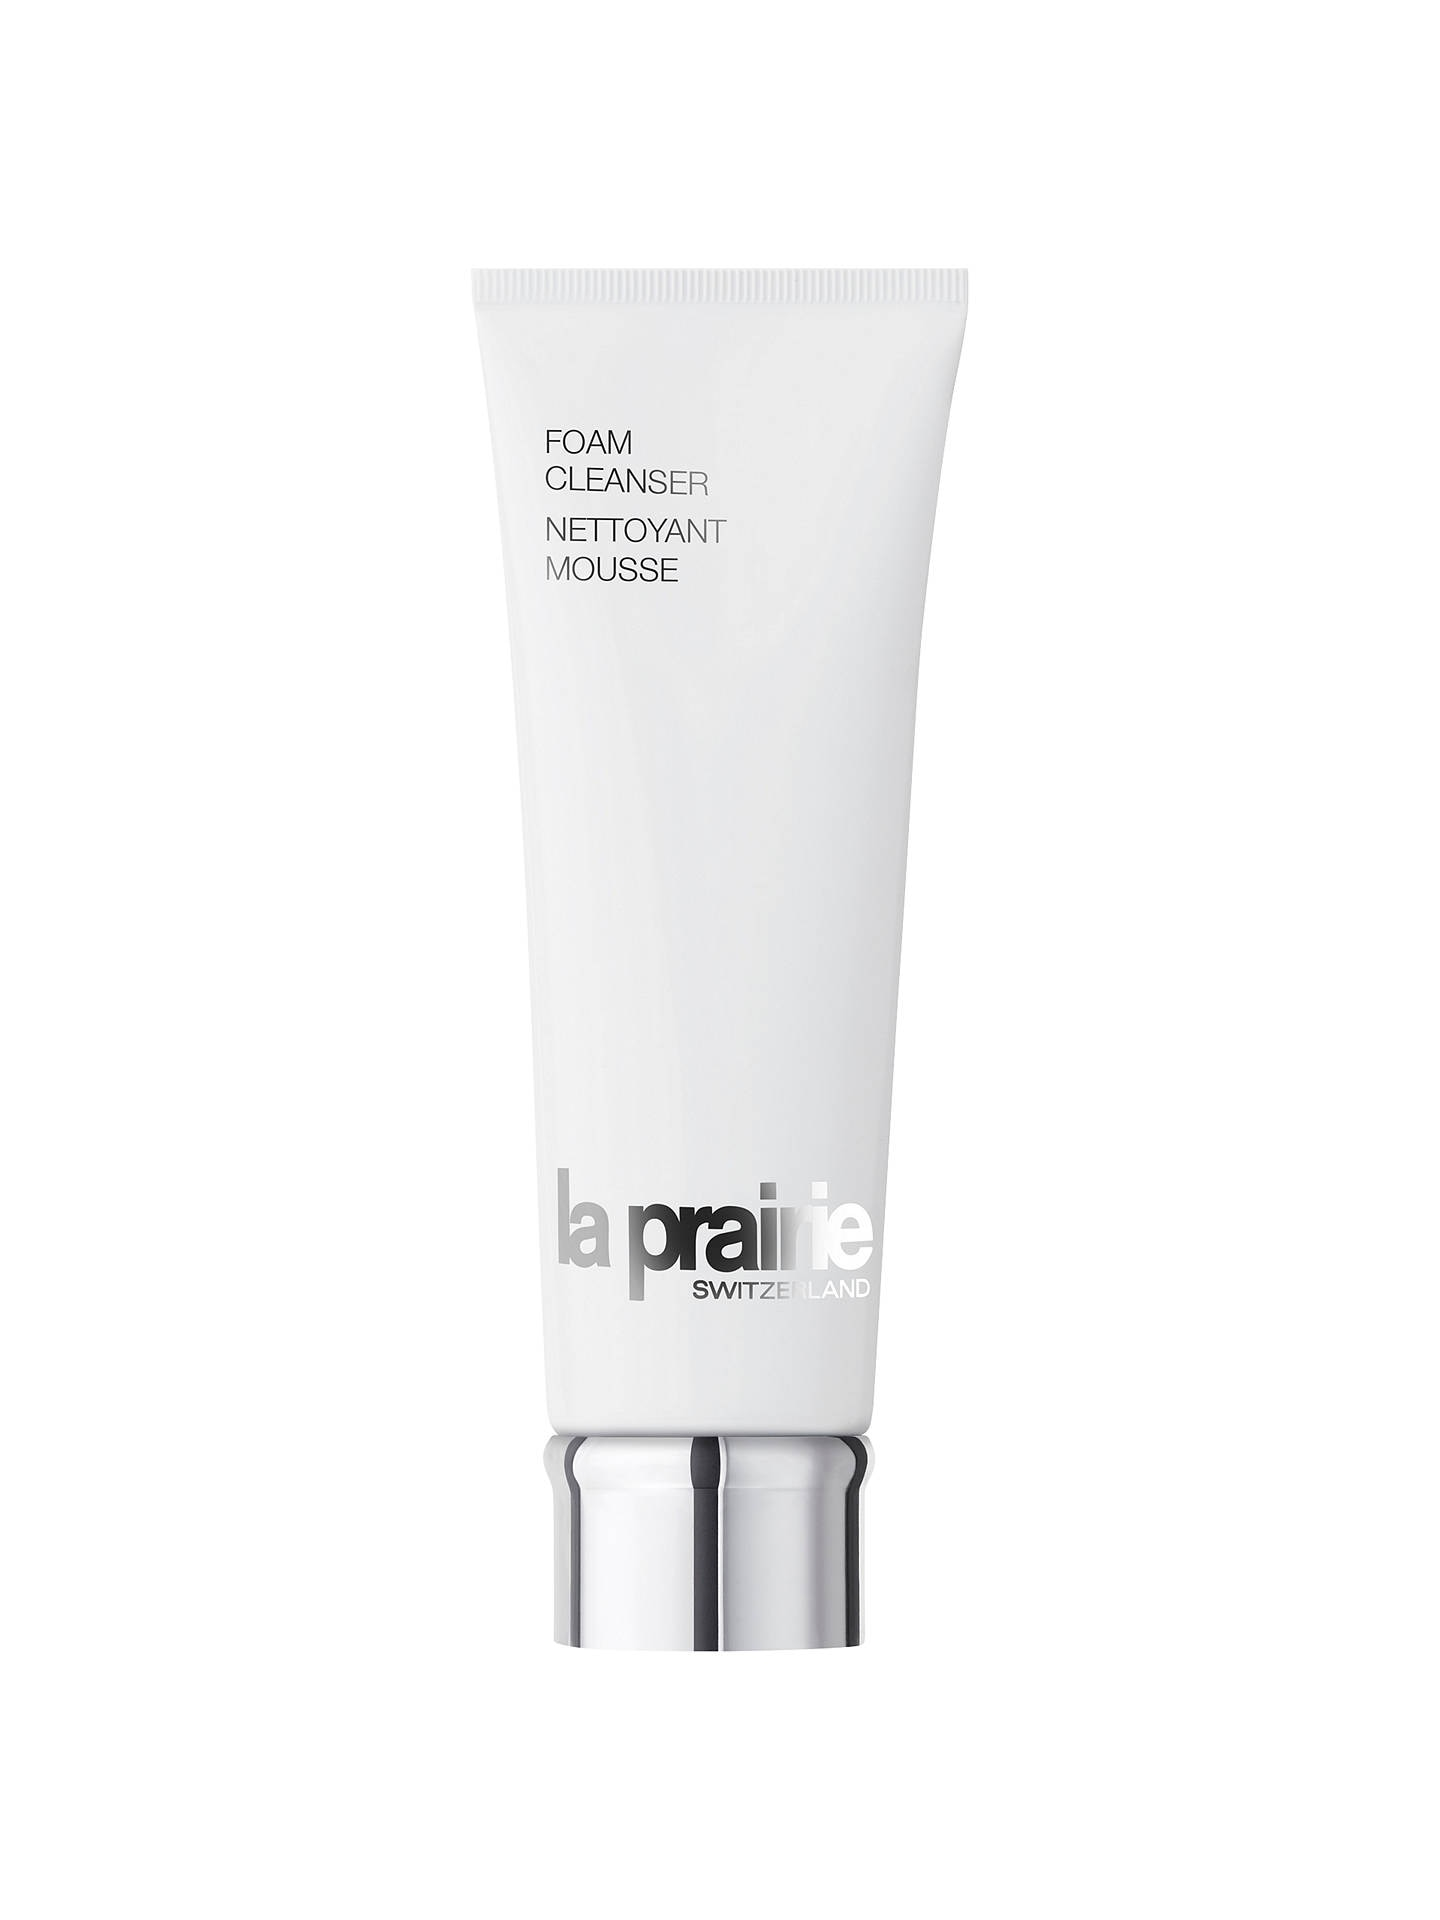 La Prairie Swiss Daily Essentials Foam Cleanser 125 ml